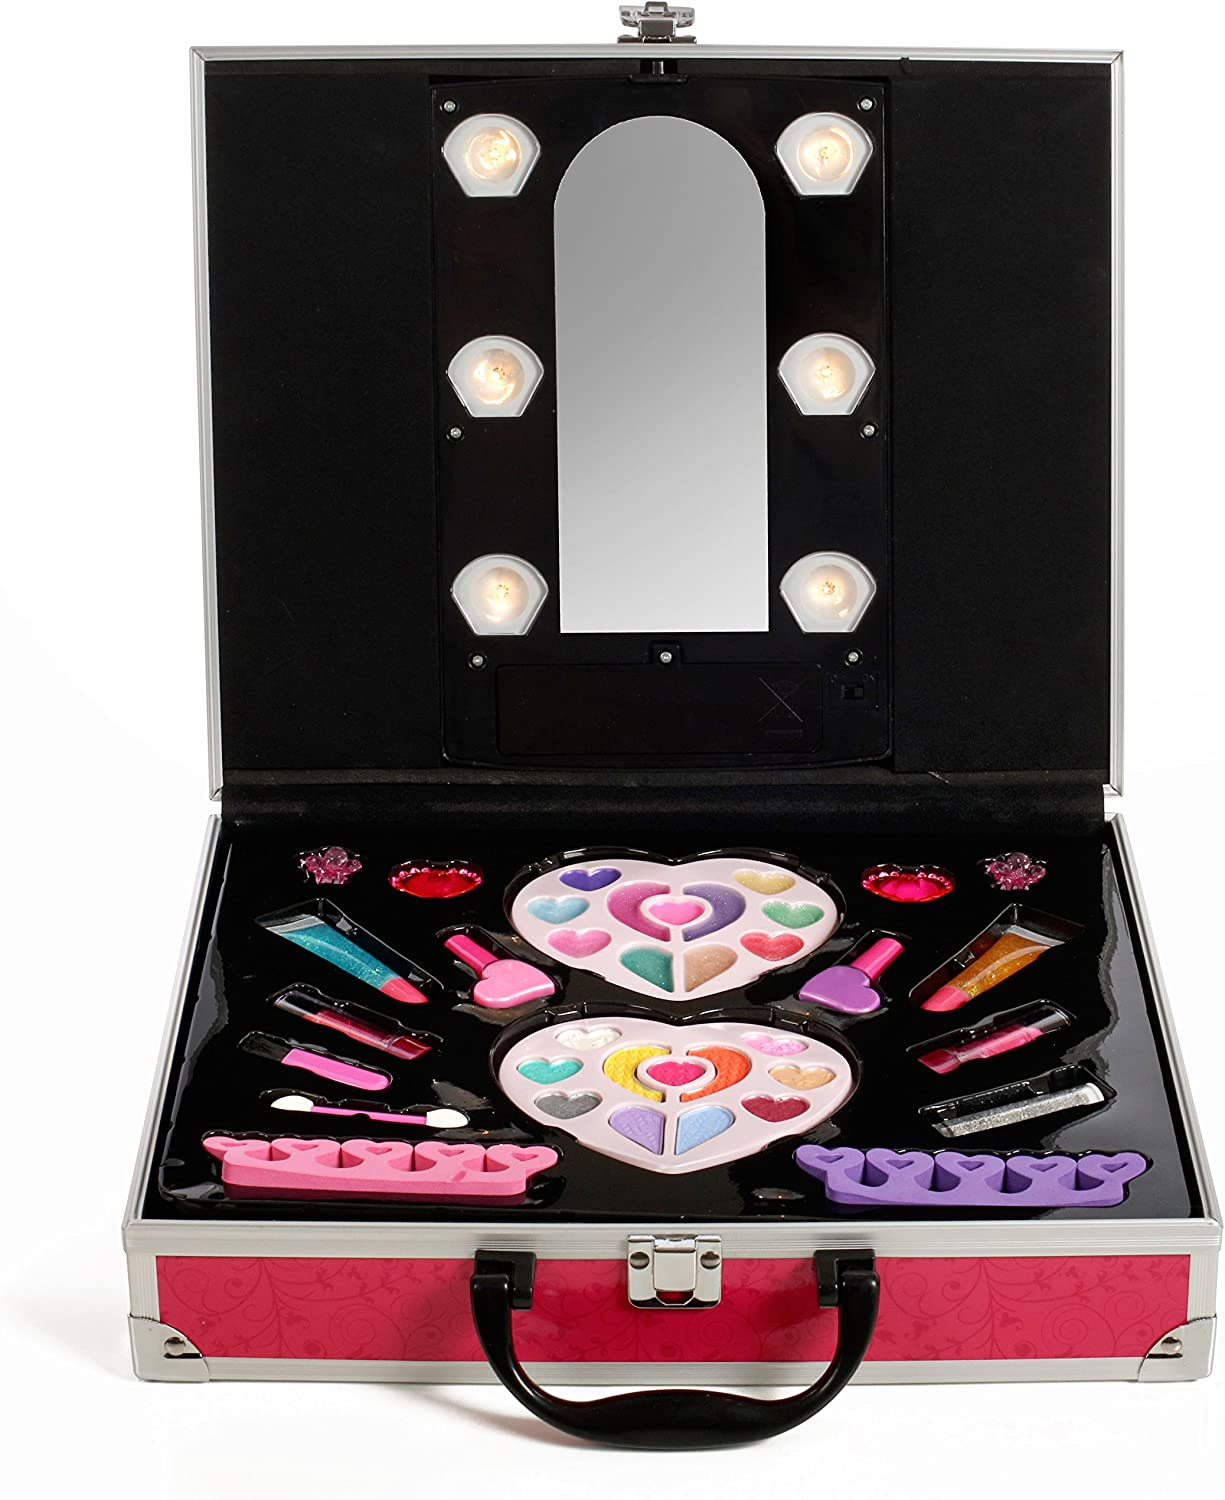 IQ Toys Pretend Play Makeup Cosmetic Set for Princess Girls in Sturdy Hot Pink Case with Built in Lights and Mirror, Non-Toxic, Washable Makeup Kit